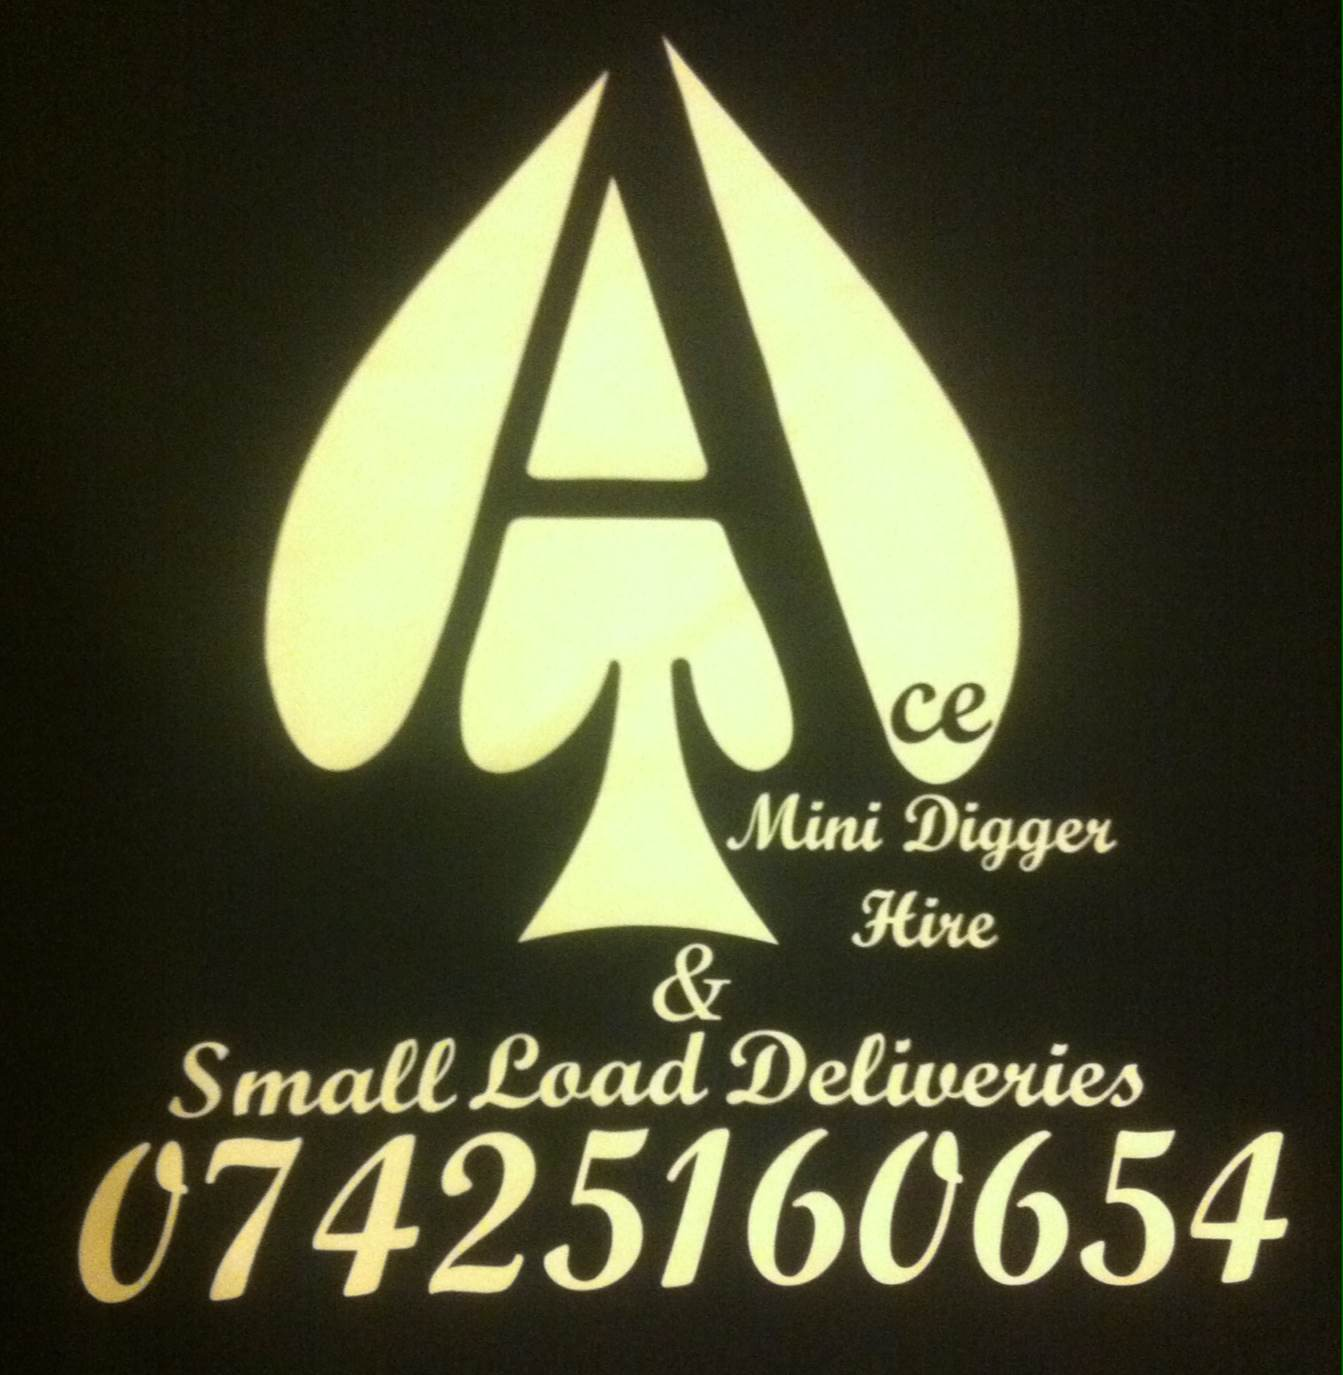 Ace Mini Digger Hire & Small load deliveries